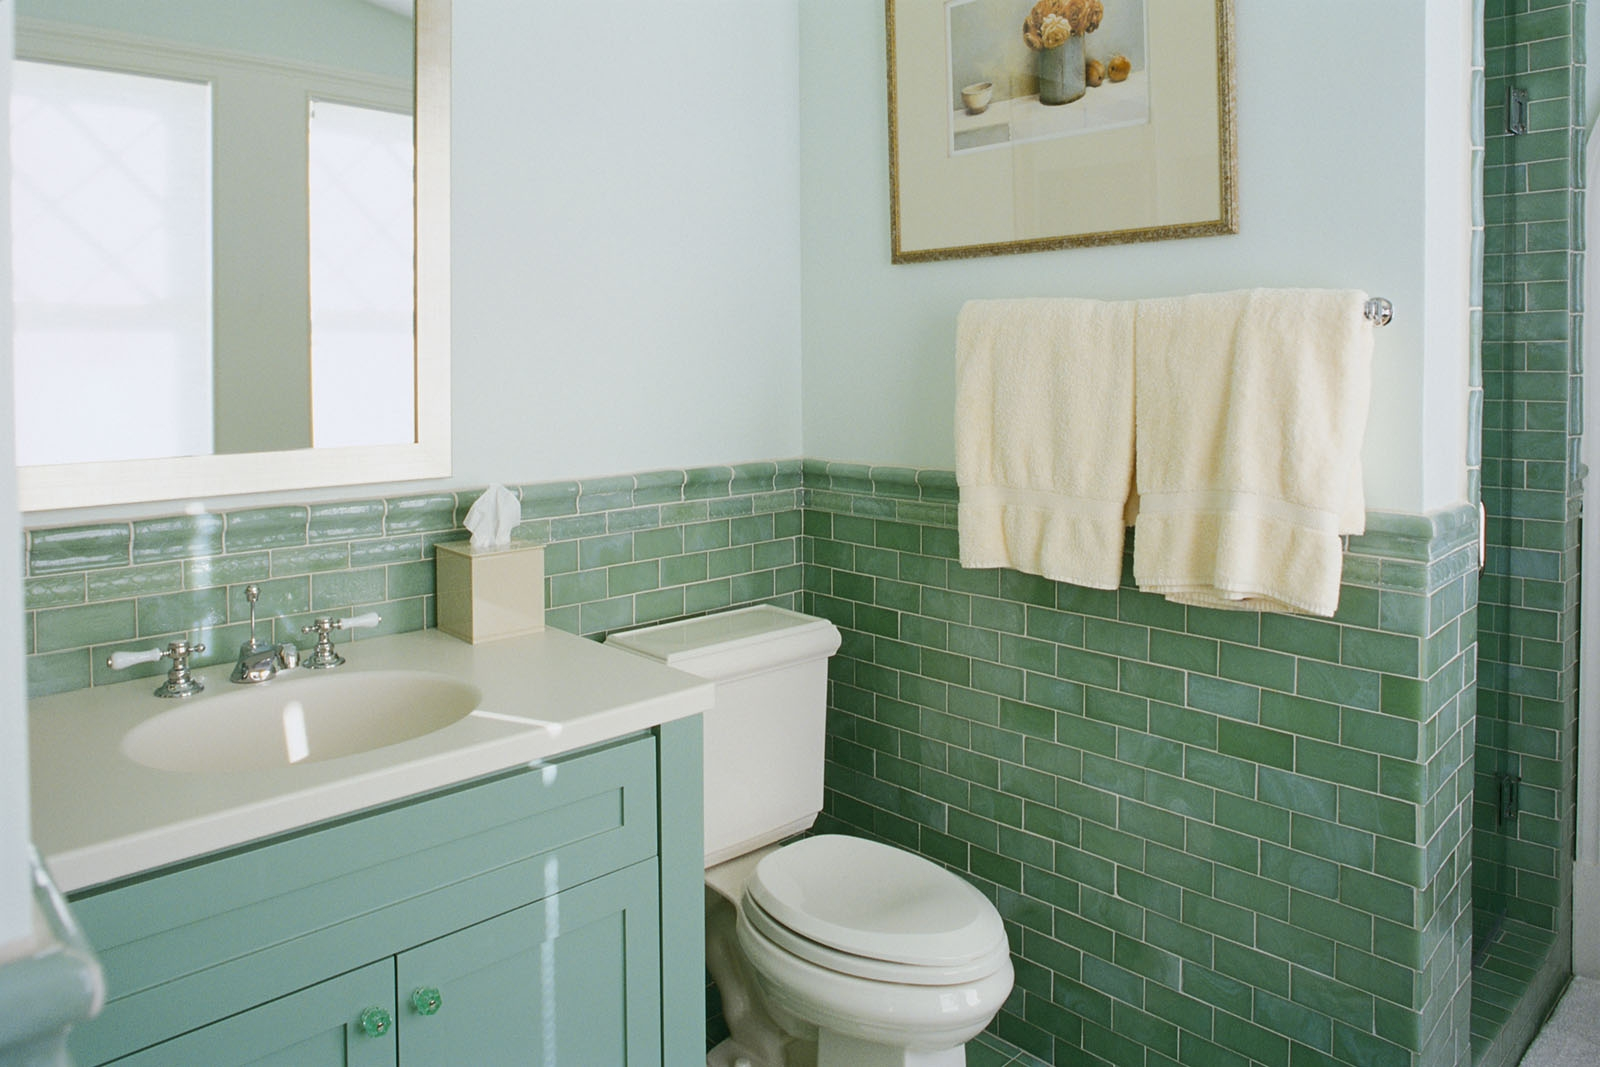 Bathroom tile color ideas -  Luxurious Green Bathroom Design Ideas With Natural Nuance